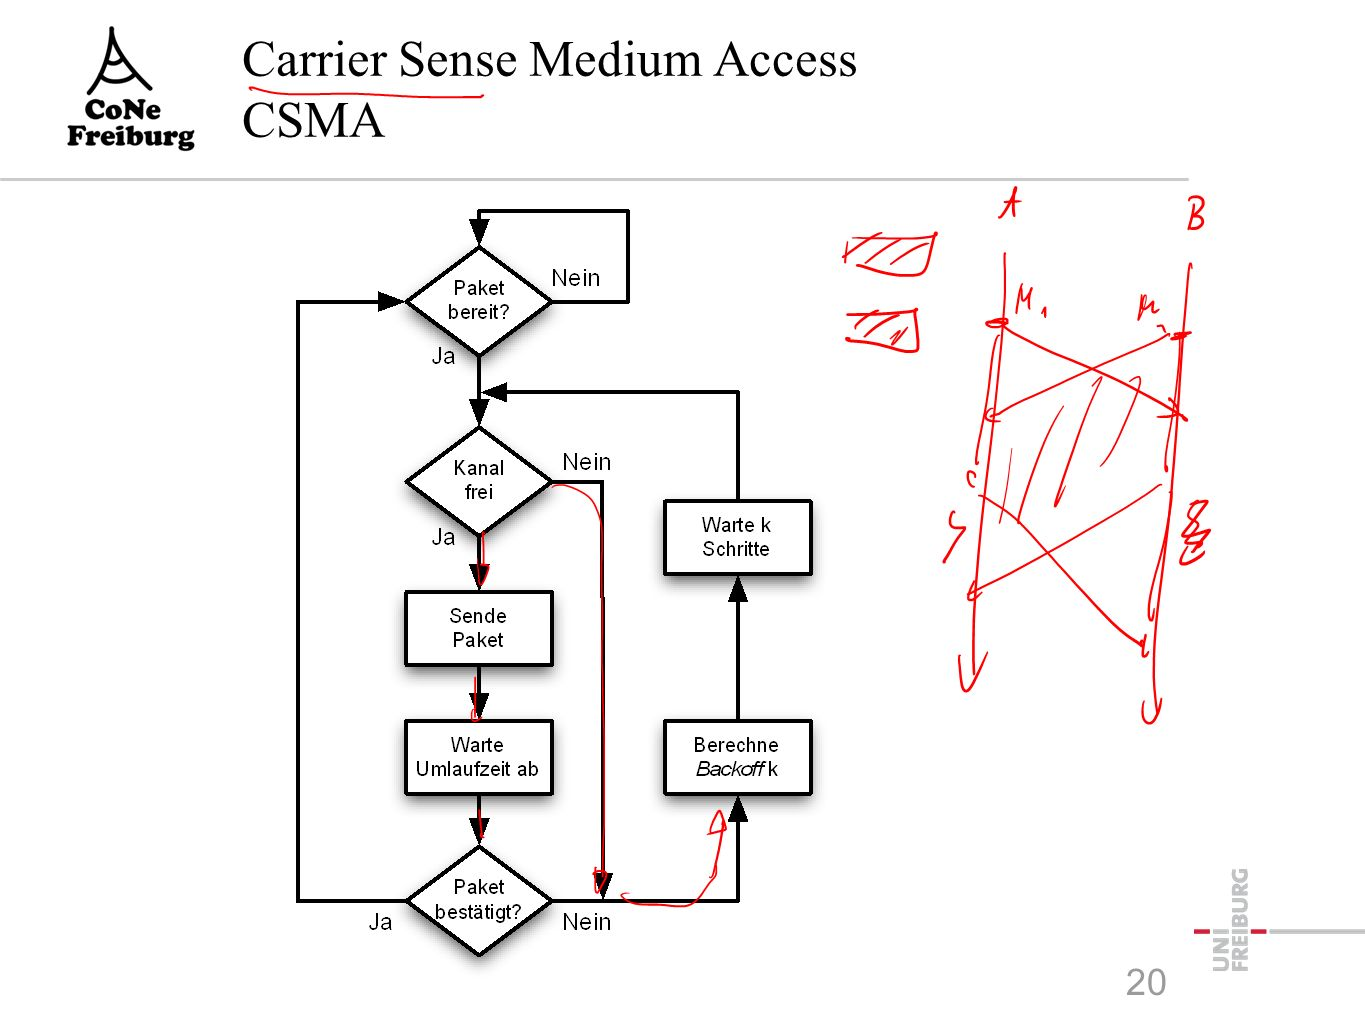 Carrier Sense Medium Access CSMA 20